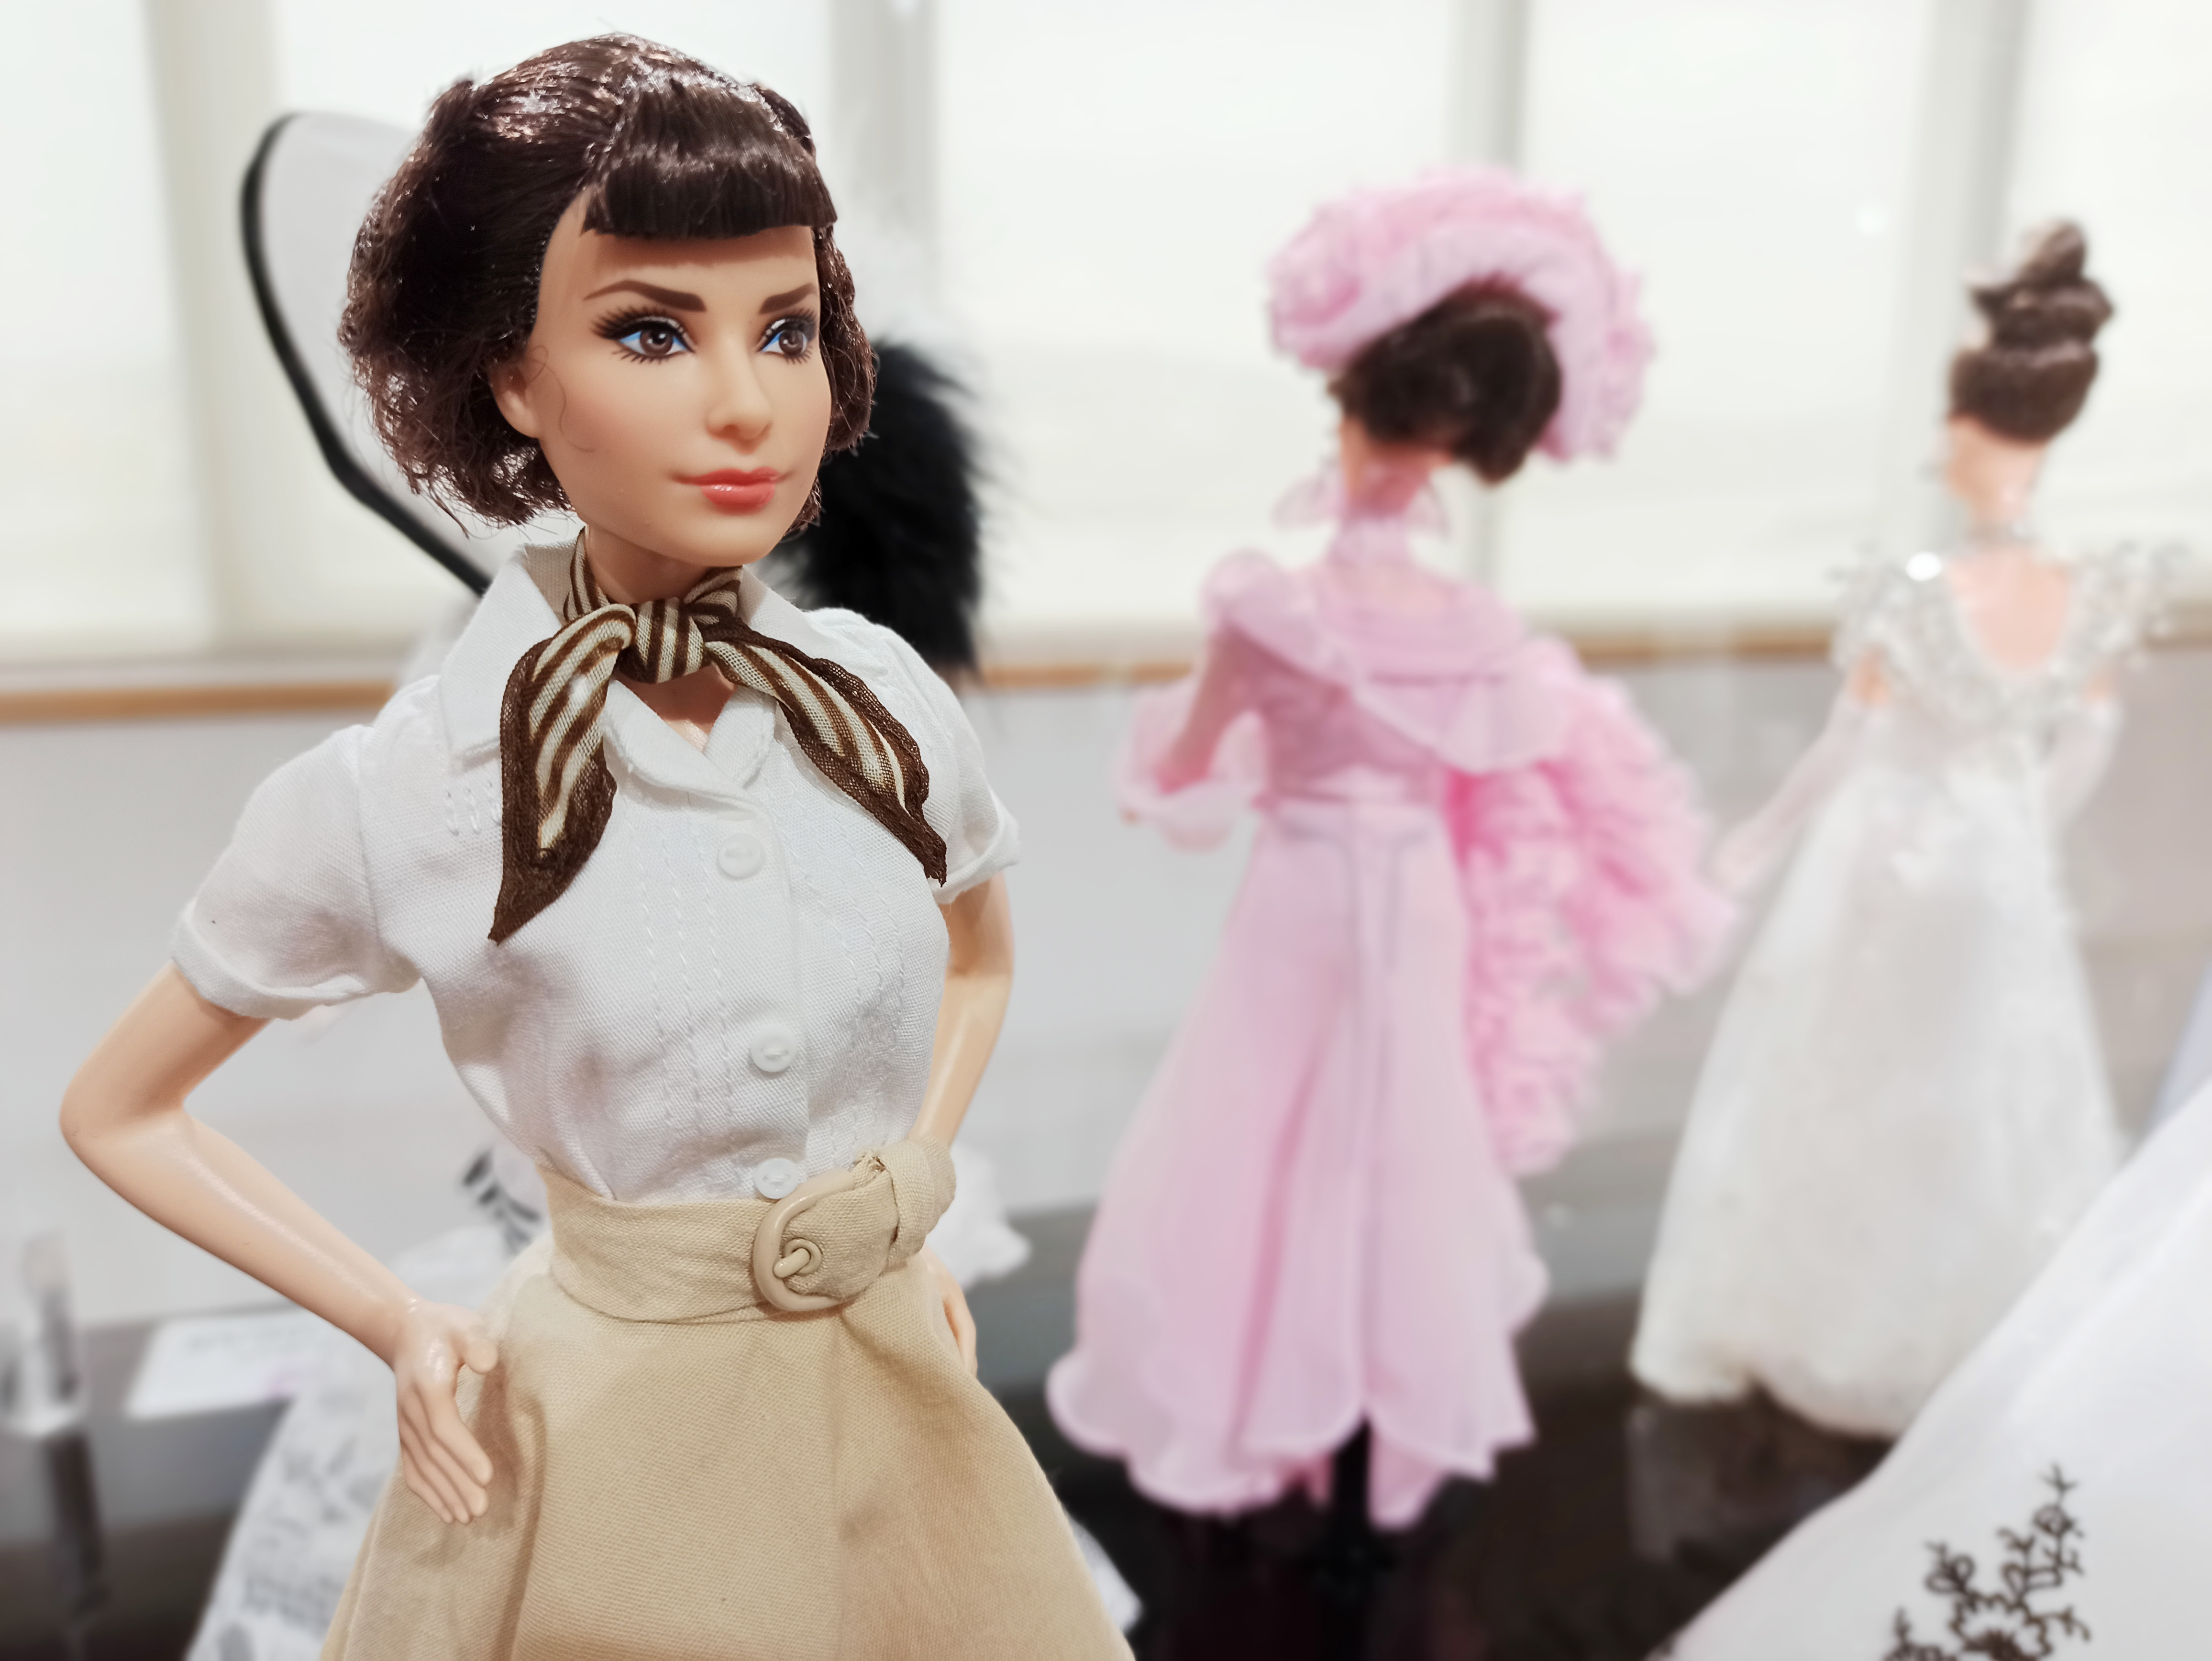 Barbie, cine y moda